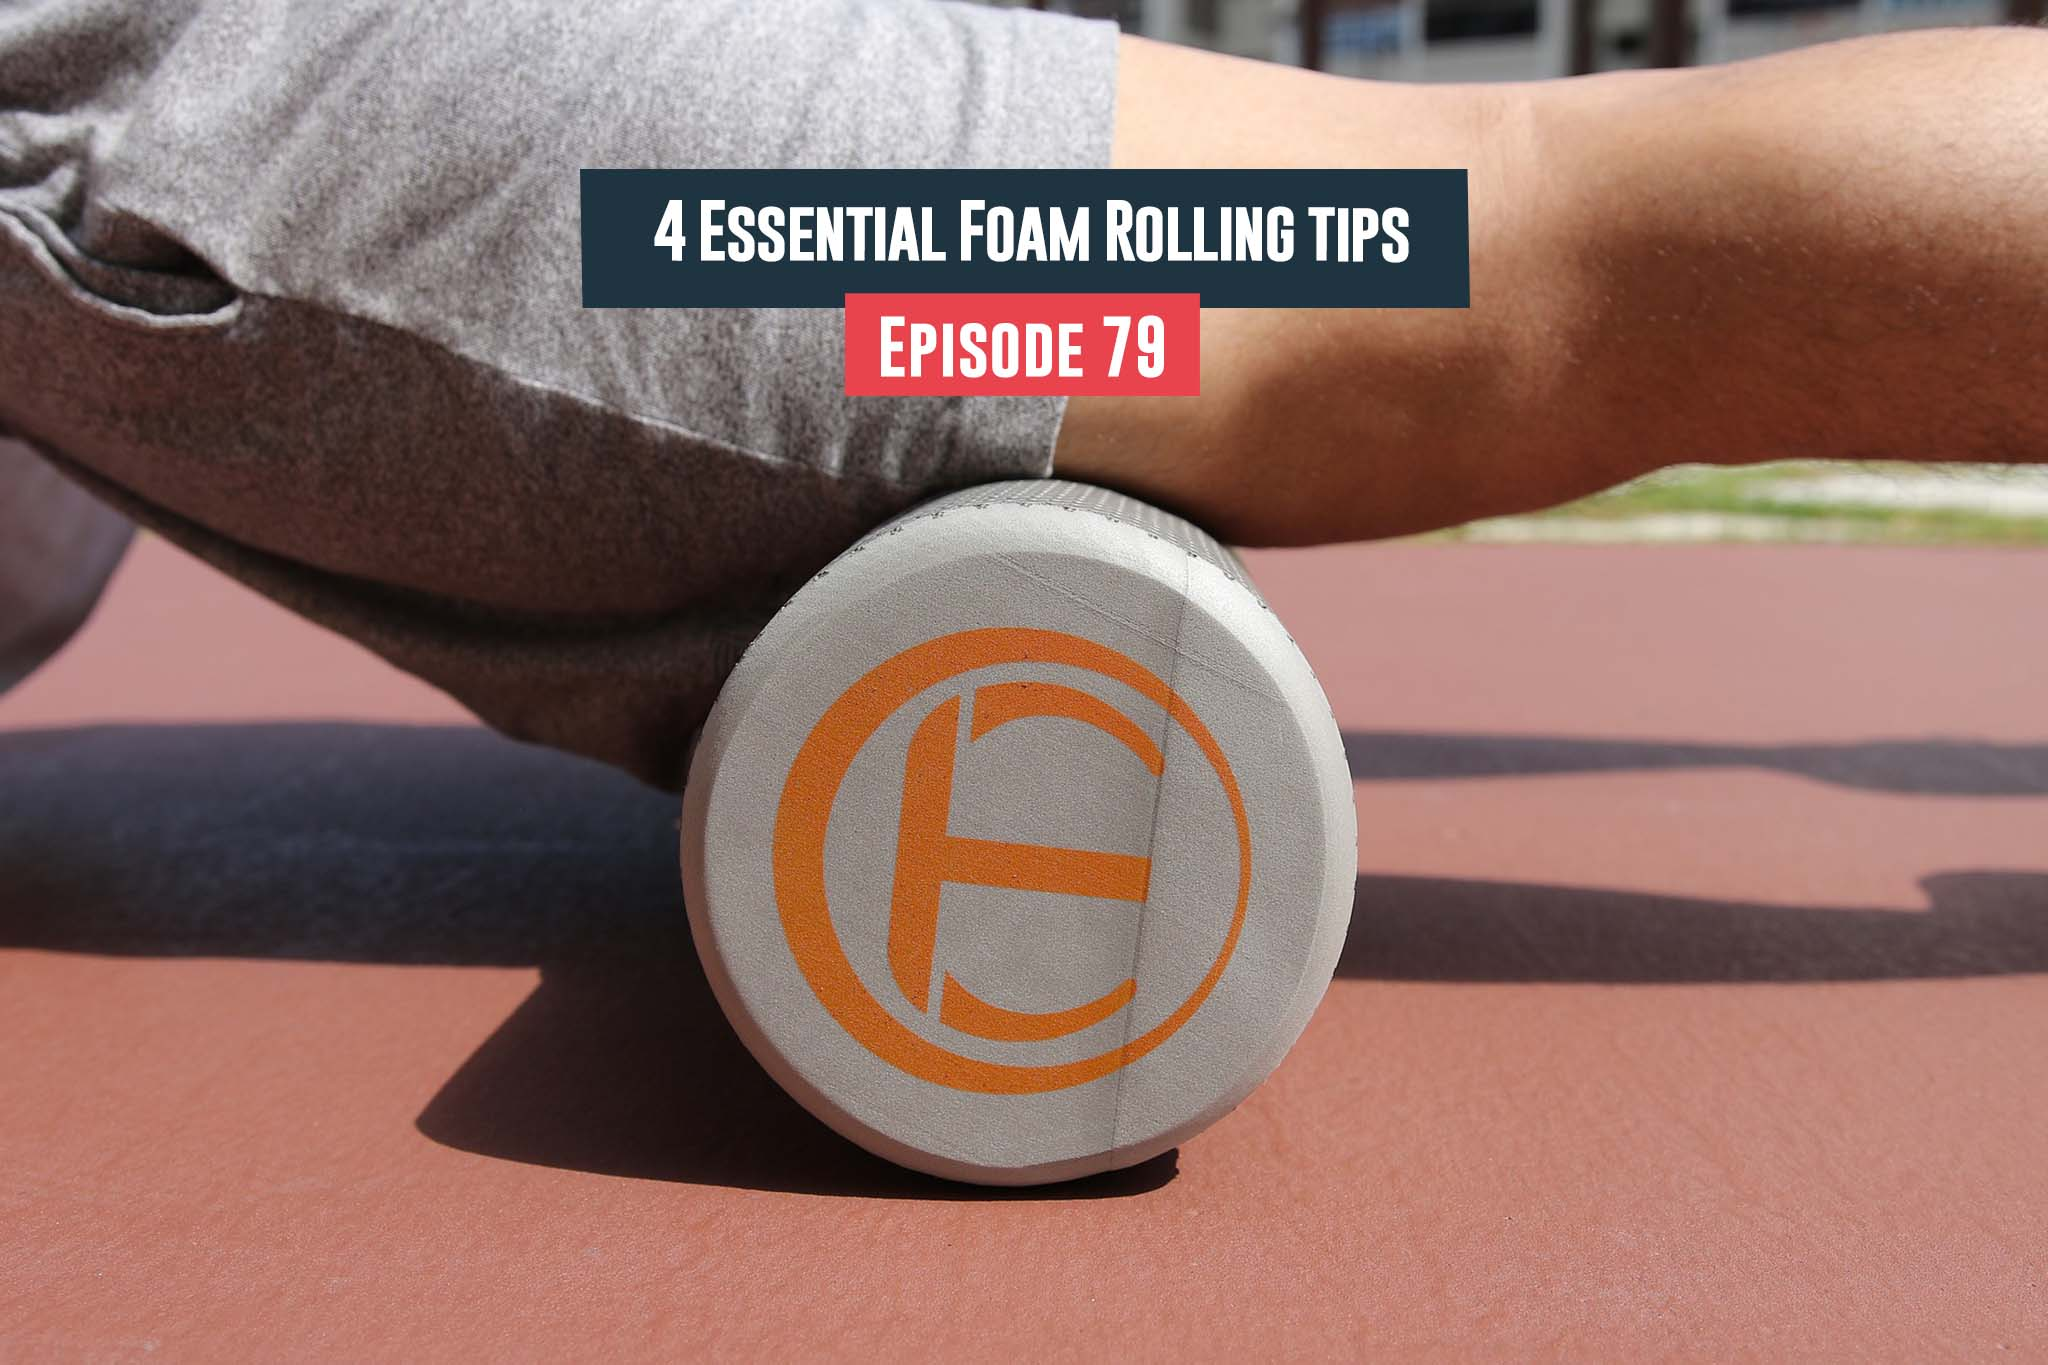 Essential Foam Rolling tips